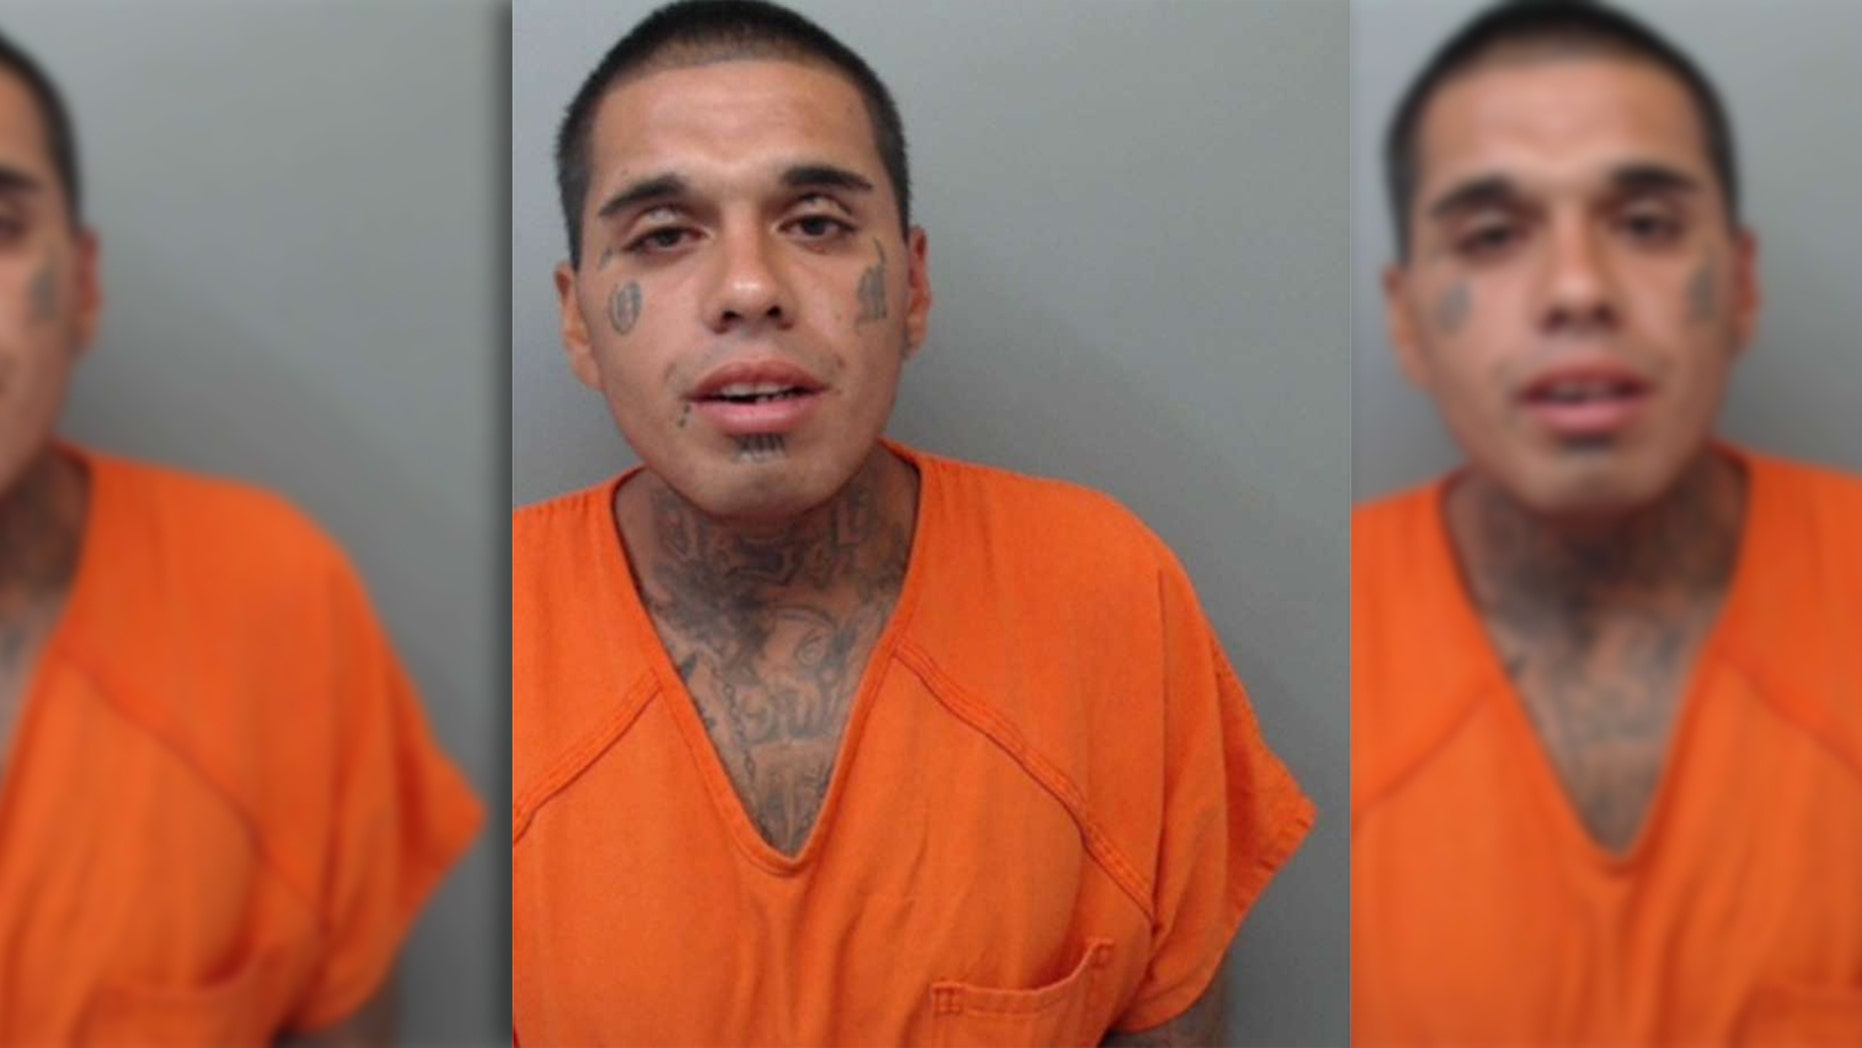 Juan Francisco Leyva  was arrested and charged Sunday with aggravated robbery, police said.